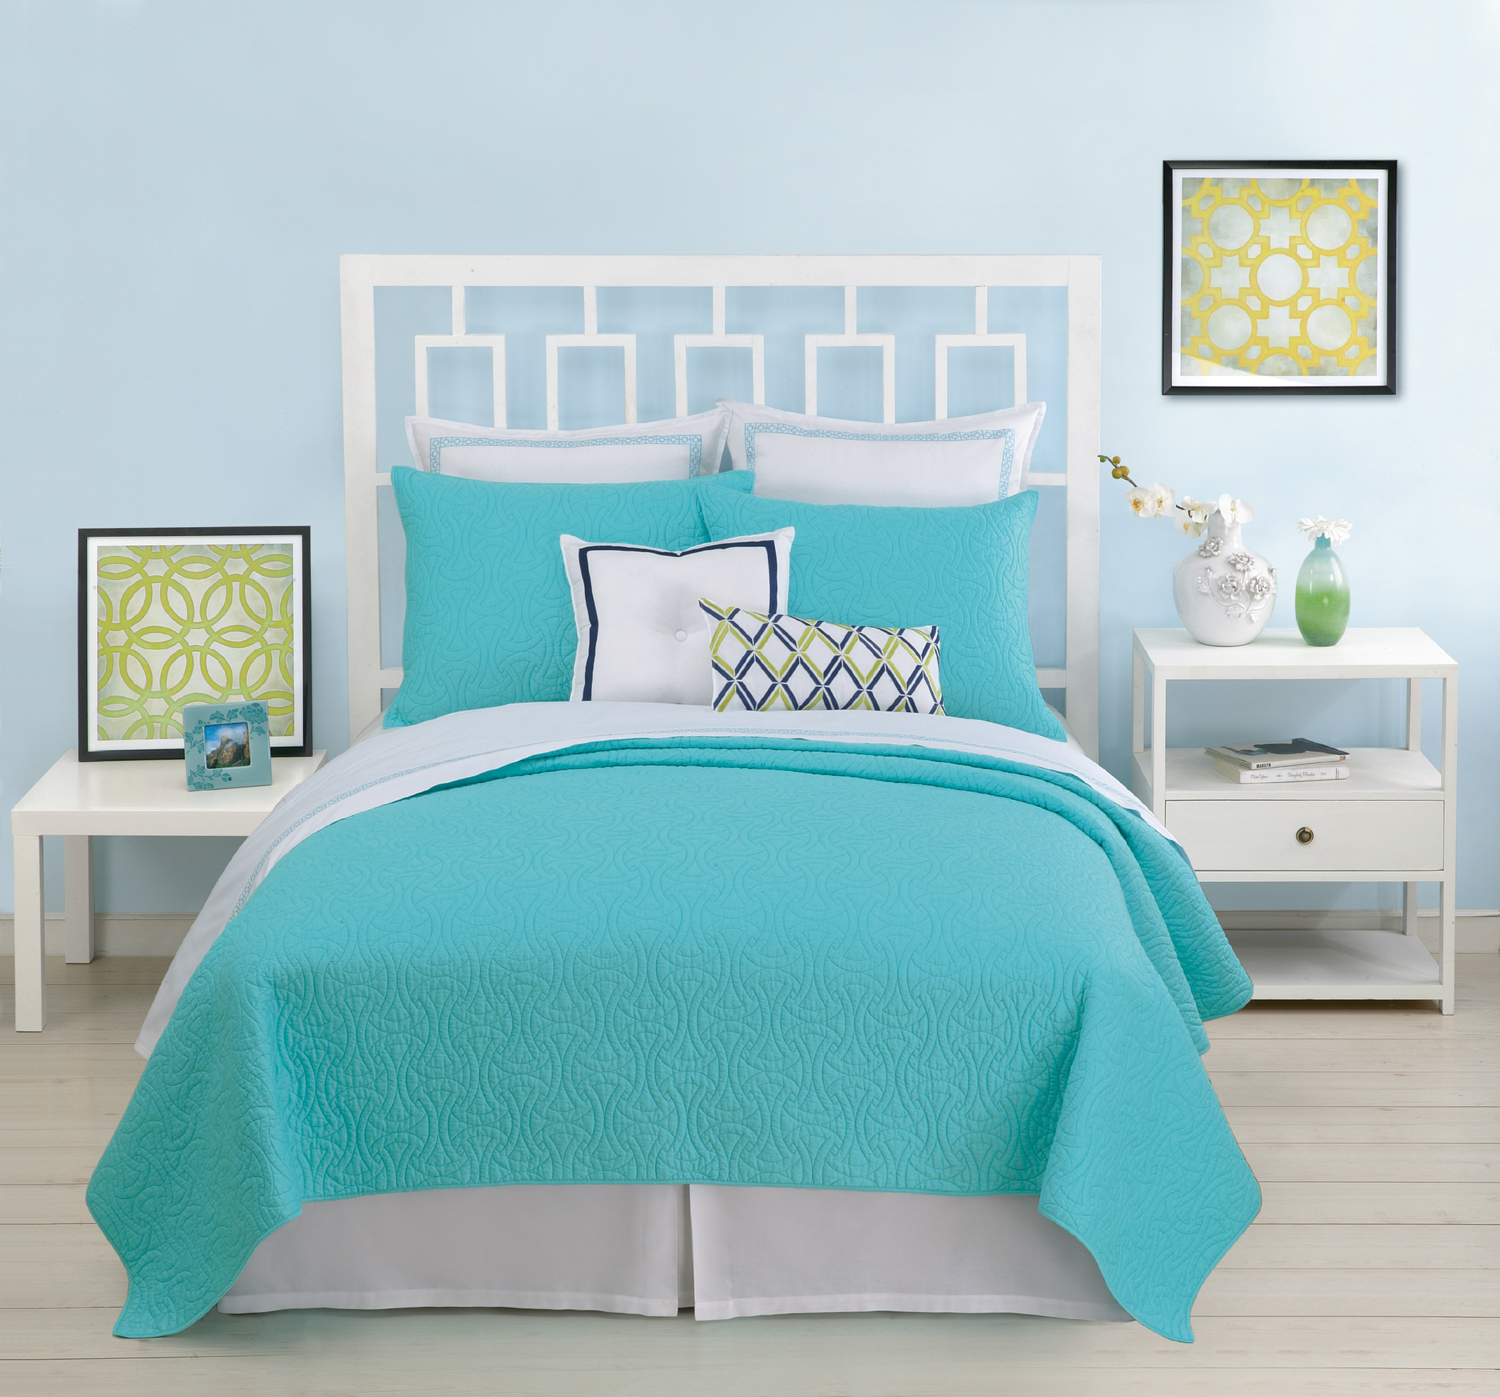 Santorini Coverlet Turquoise By Trina Turk Bedding